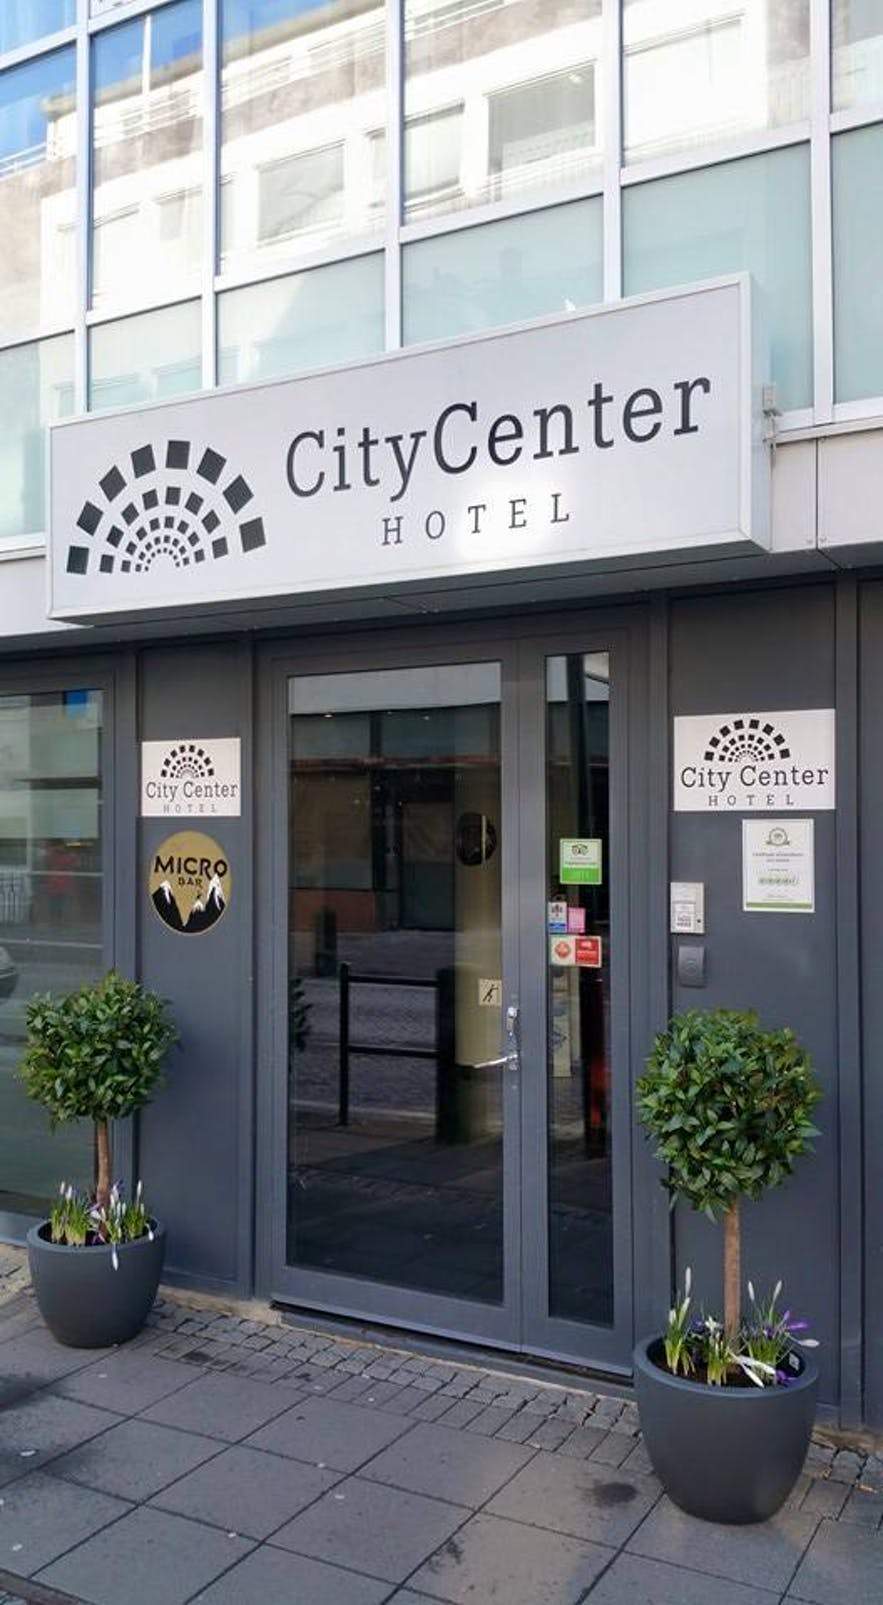 City Center Hotel is right in the middle of the downtown area.